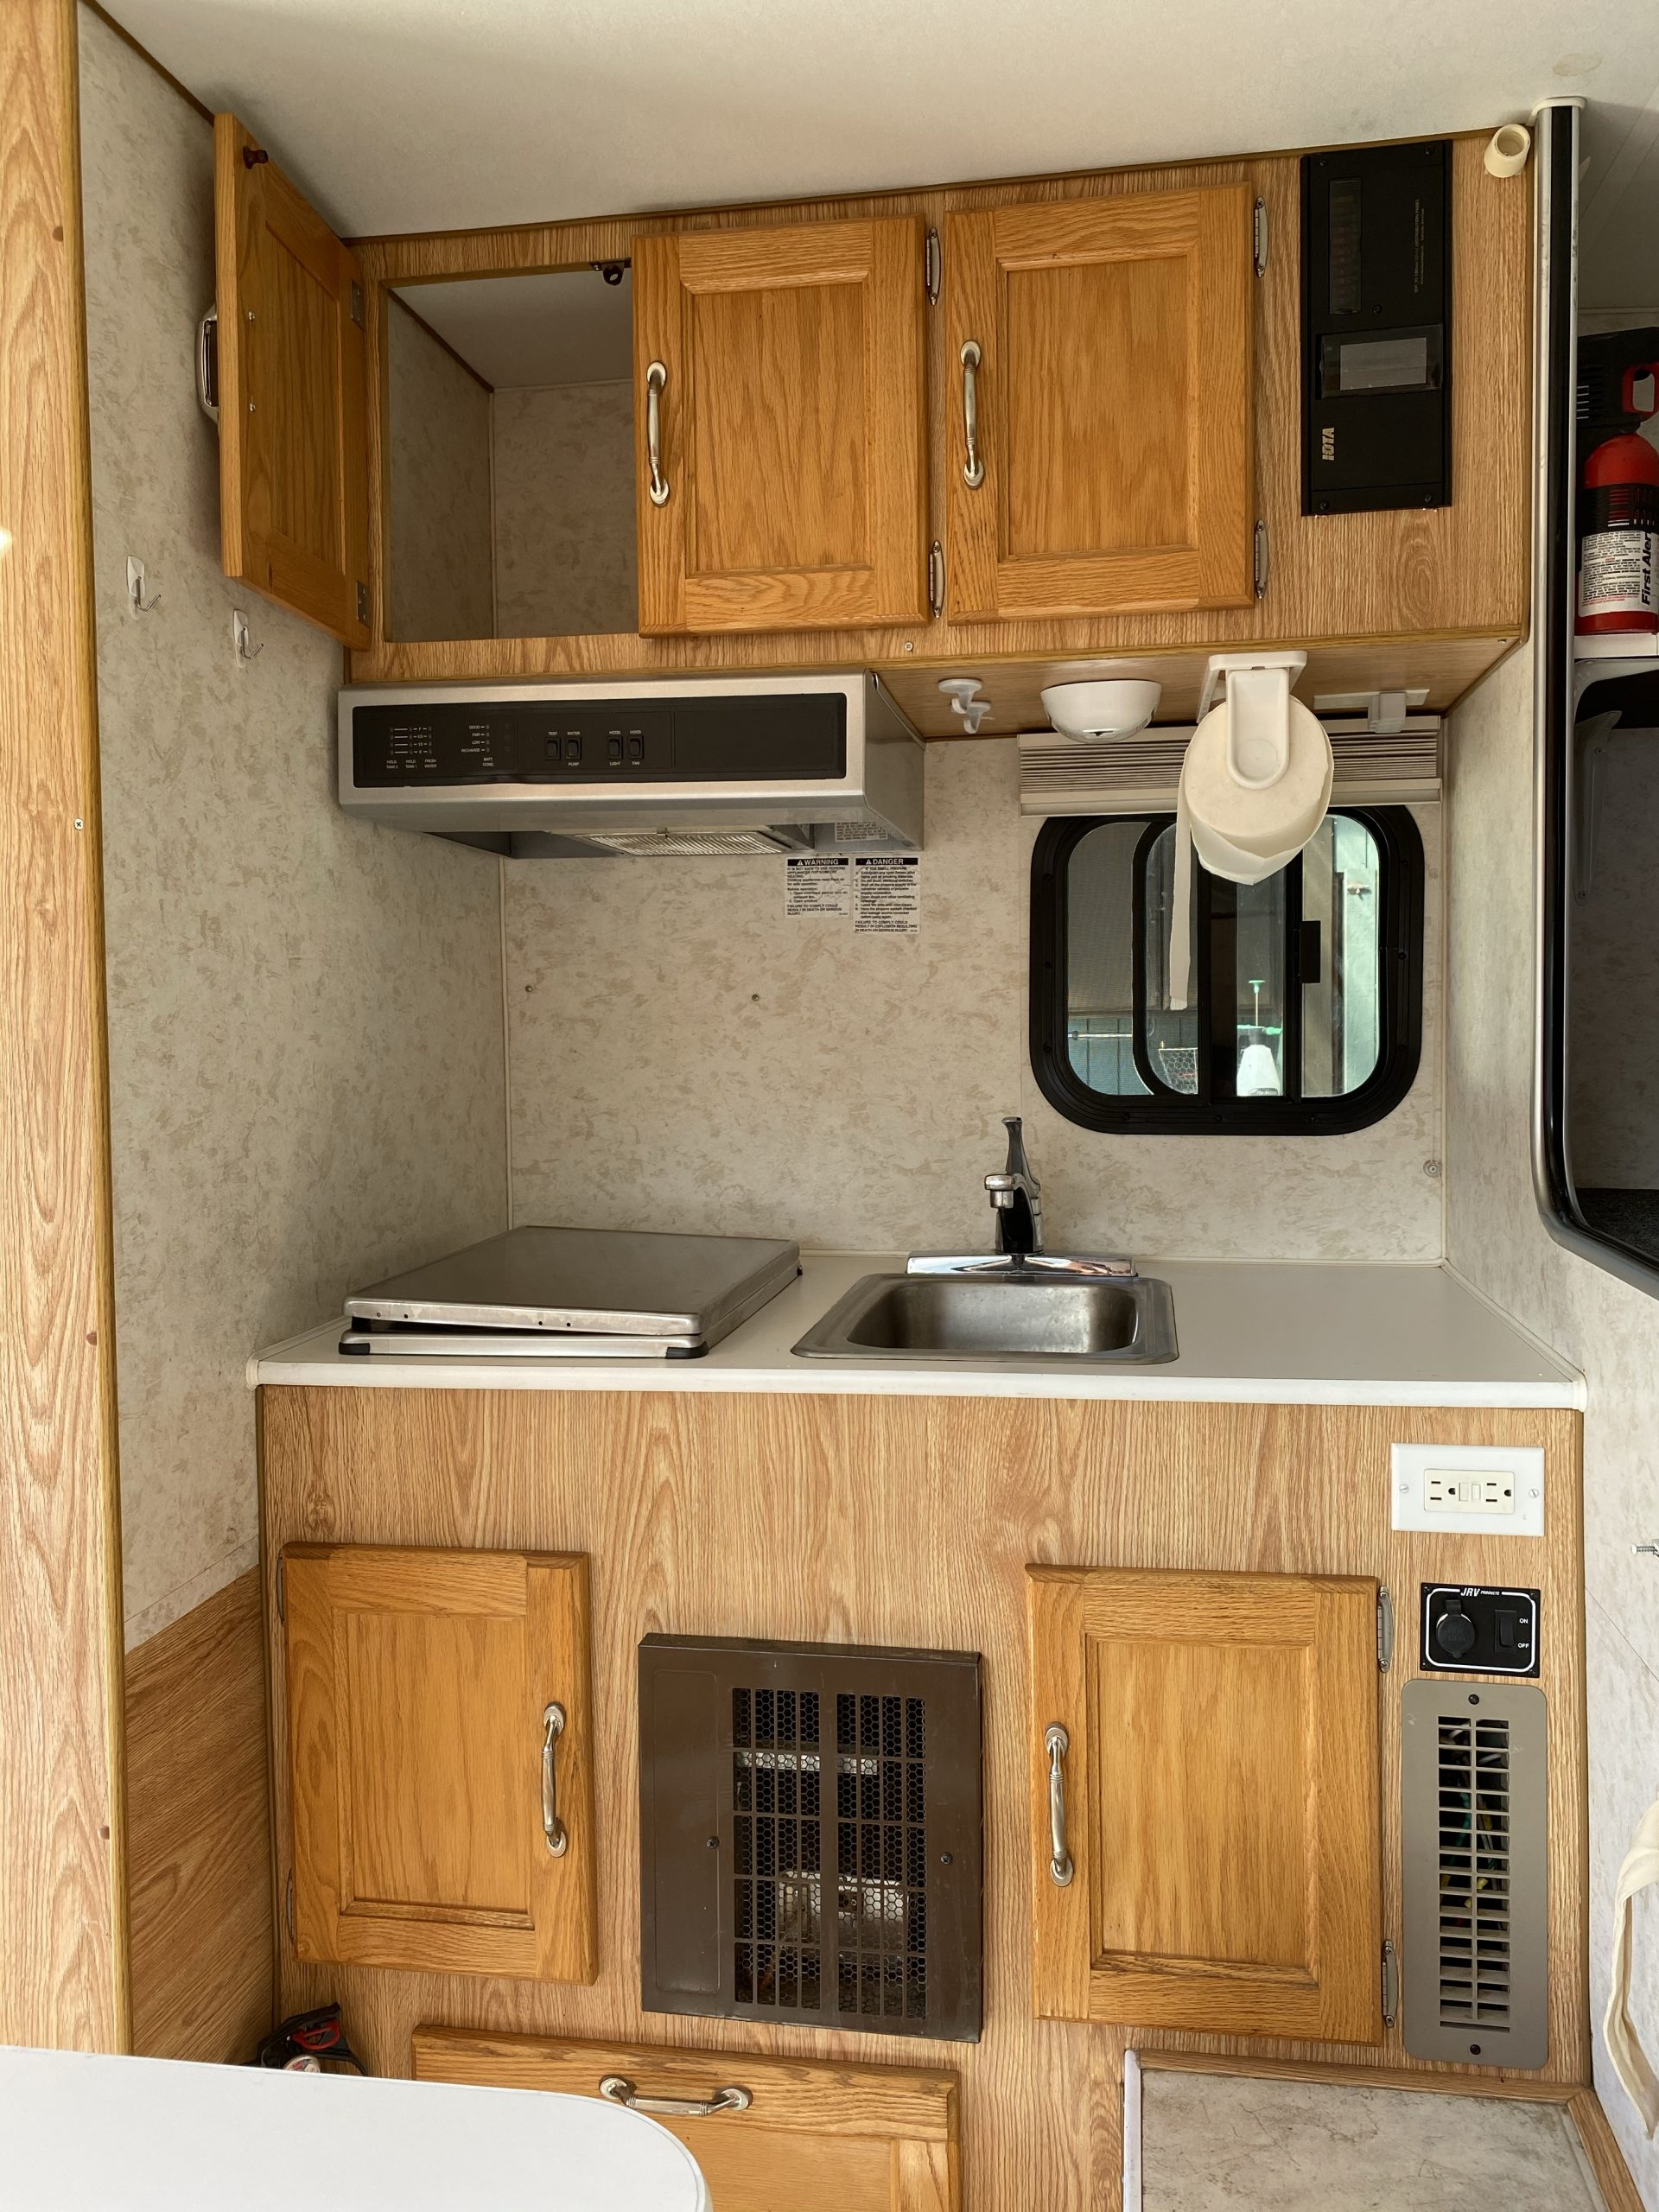 Cabover Camper Renovation | A Bit of Bees Knees